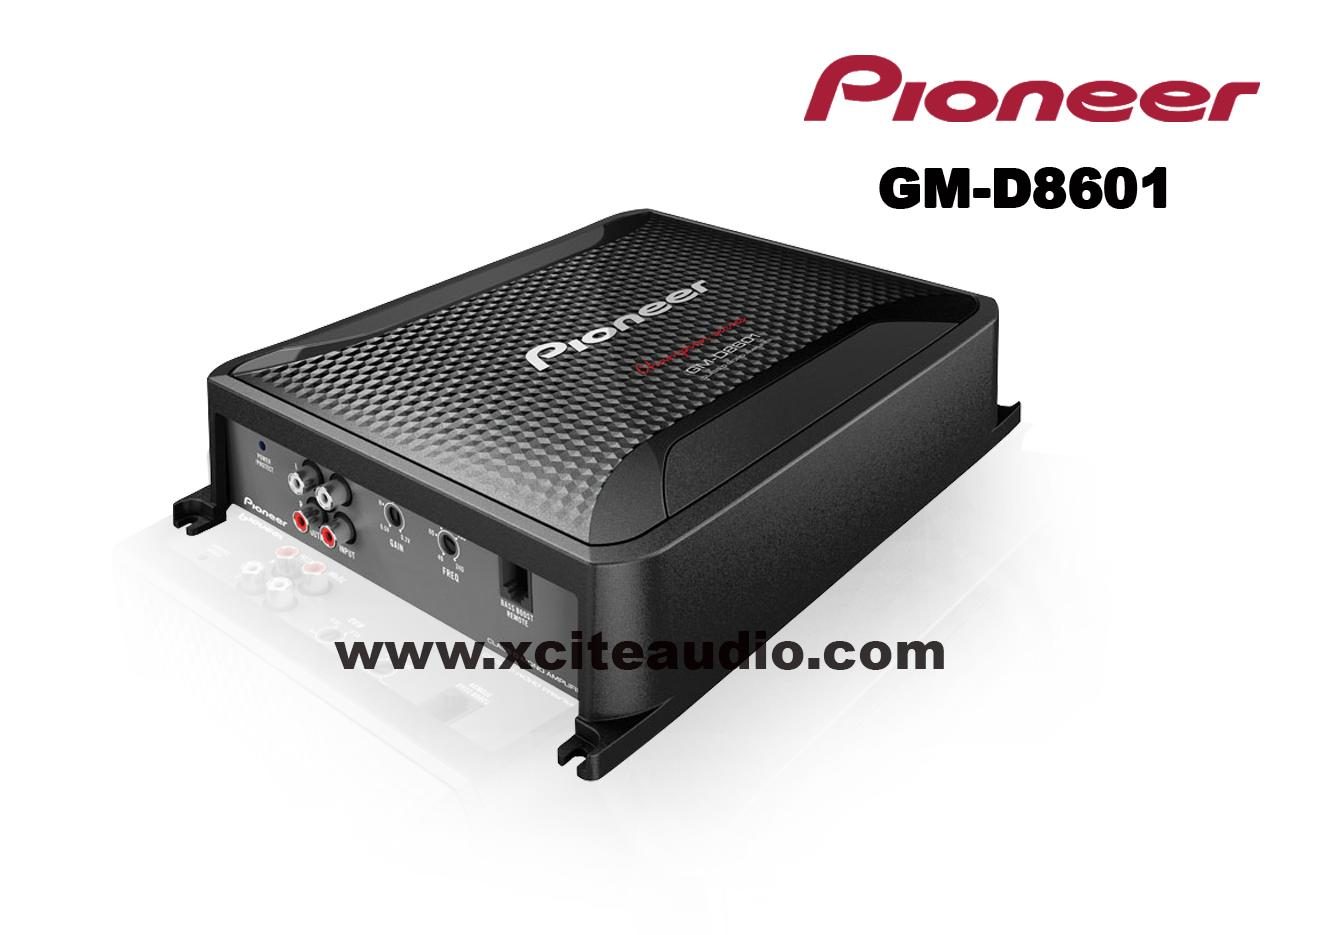 pioneer gm d8601. pioneer gm-d8601 class d 1600w monoblock 1 ch car amplifier stereo sub gm d8601